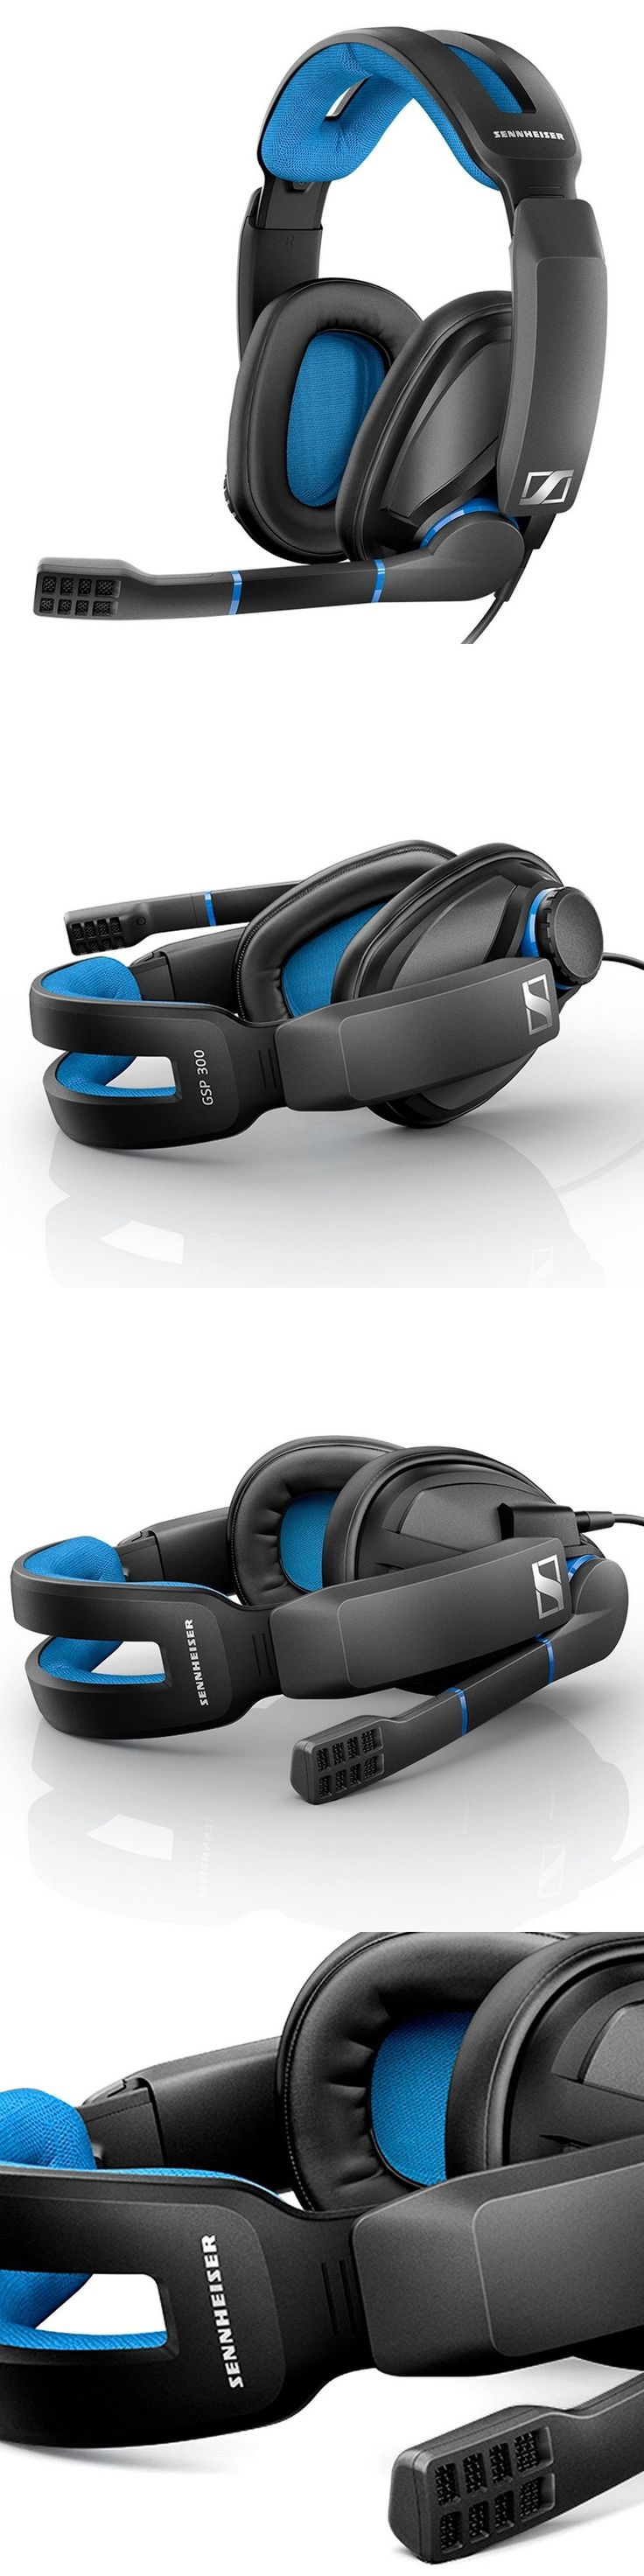 Headsets and Earpieces: Sennheiser Gsp 300 Gaming Headset W Noise Cancelling Microphone For Pcs And Ps4 -> BUY IT NOW ONLY: $79.99 on eBay!